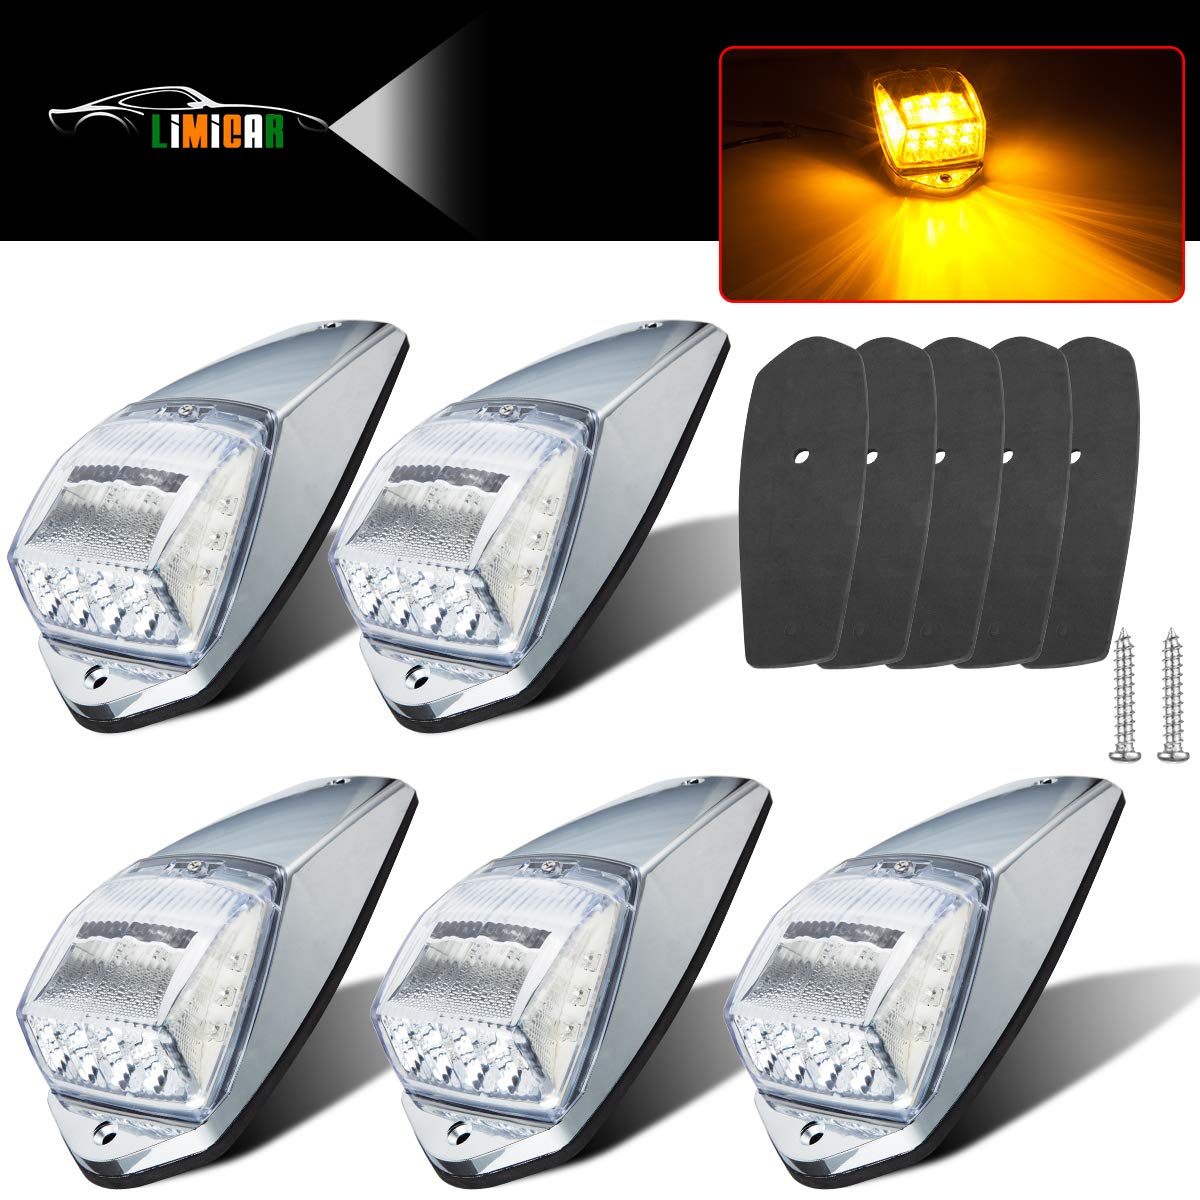 LIMICAR 5X Clear Lens 17 LED Amber Top Roof Running Lights with Chrome Base for Truck Peterbilt Kenworth Freightliner Mack Volvo Autocar Hayes International Paccar Western Star Mack Trailer Top Clearance Roof Running Lights